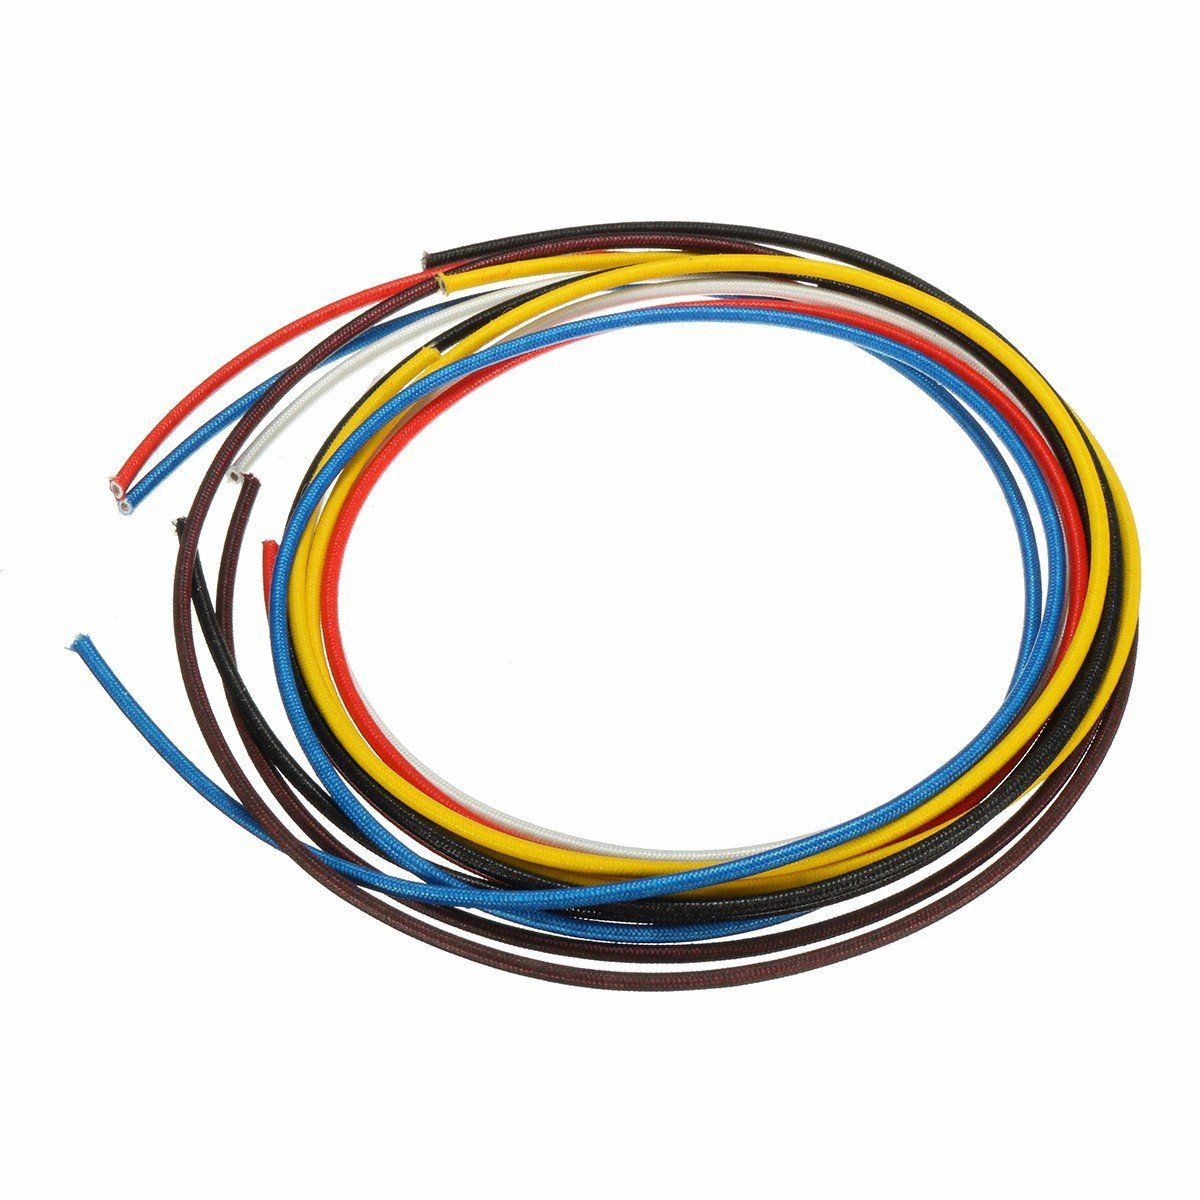 2.5mm Oven Fire Heat Resistant Fibreglass Appliance Cable Wire High ...